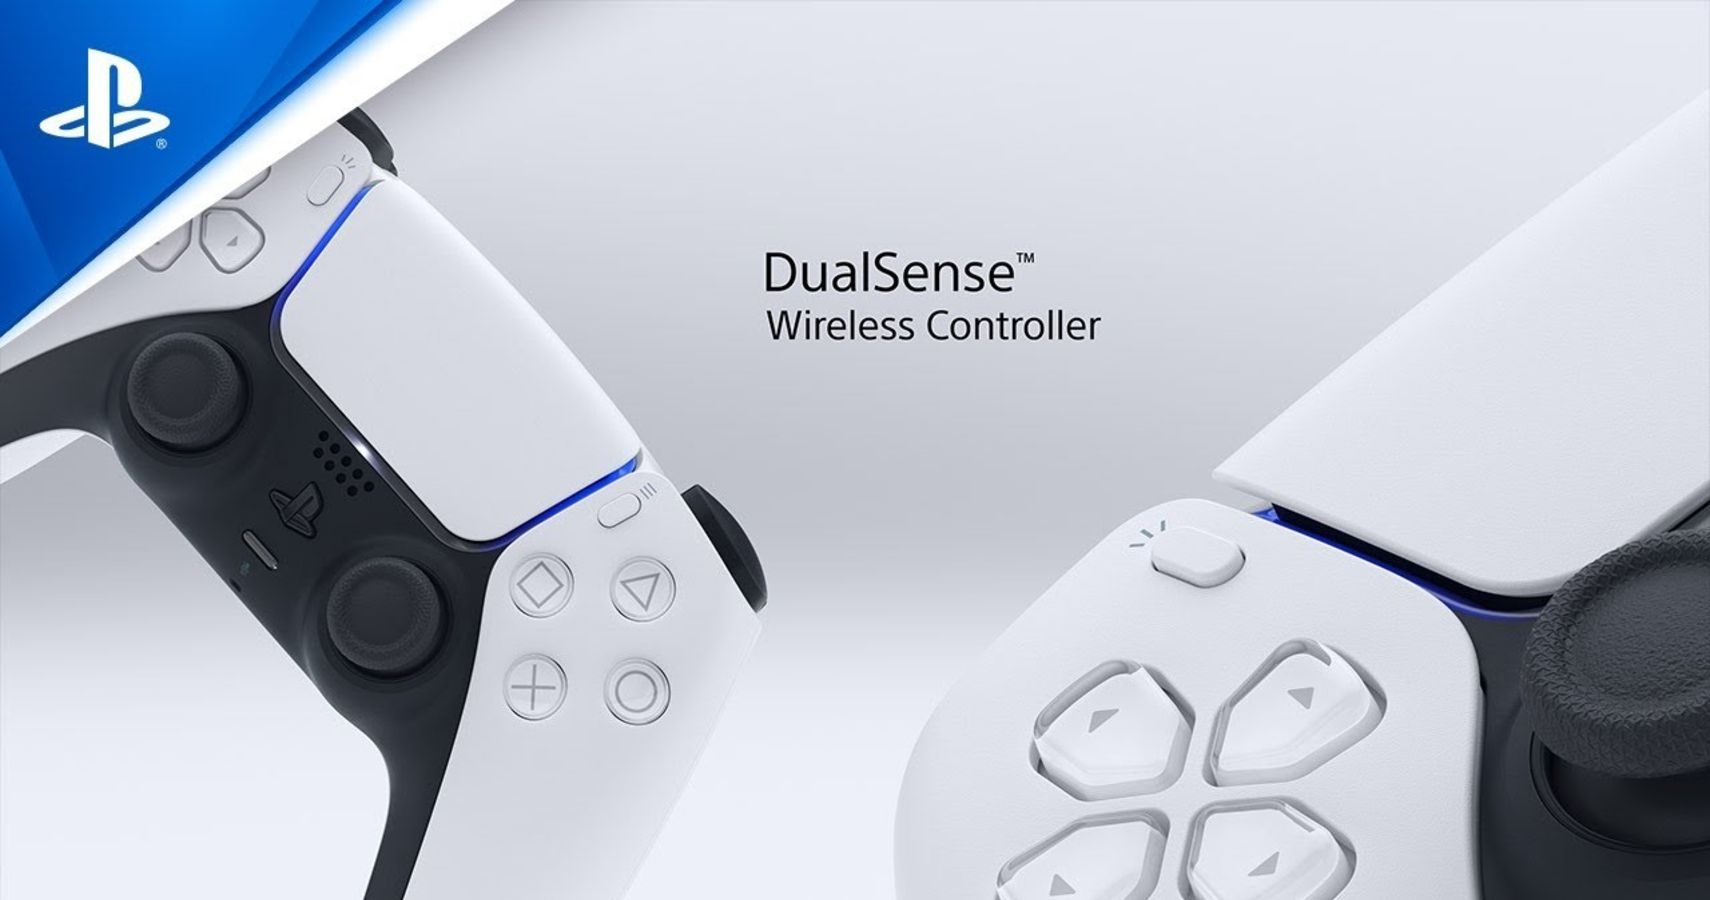 PS5 Players Are Reporting DualSense's Adaptive Triggers Breaking